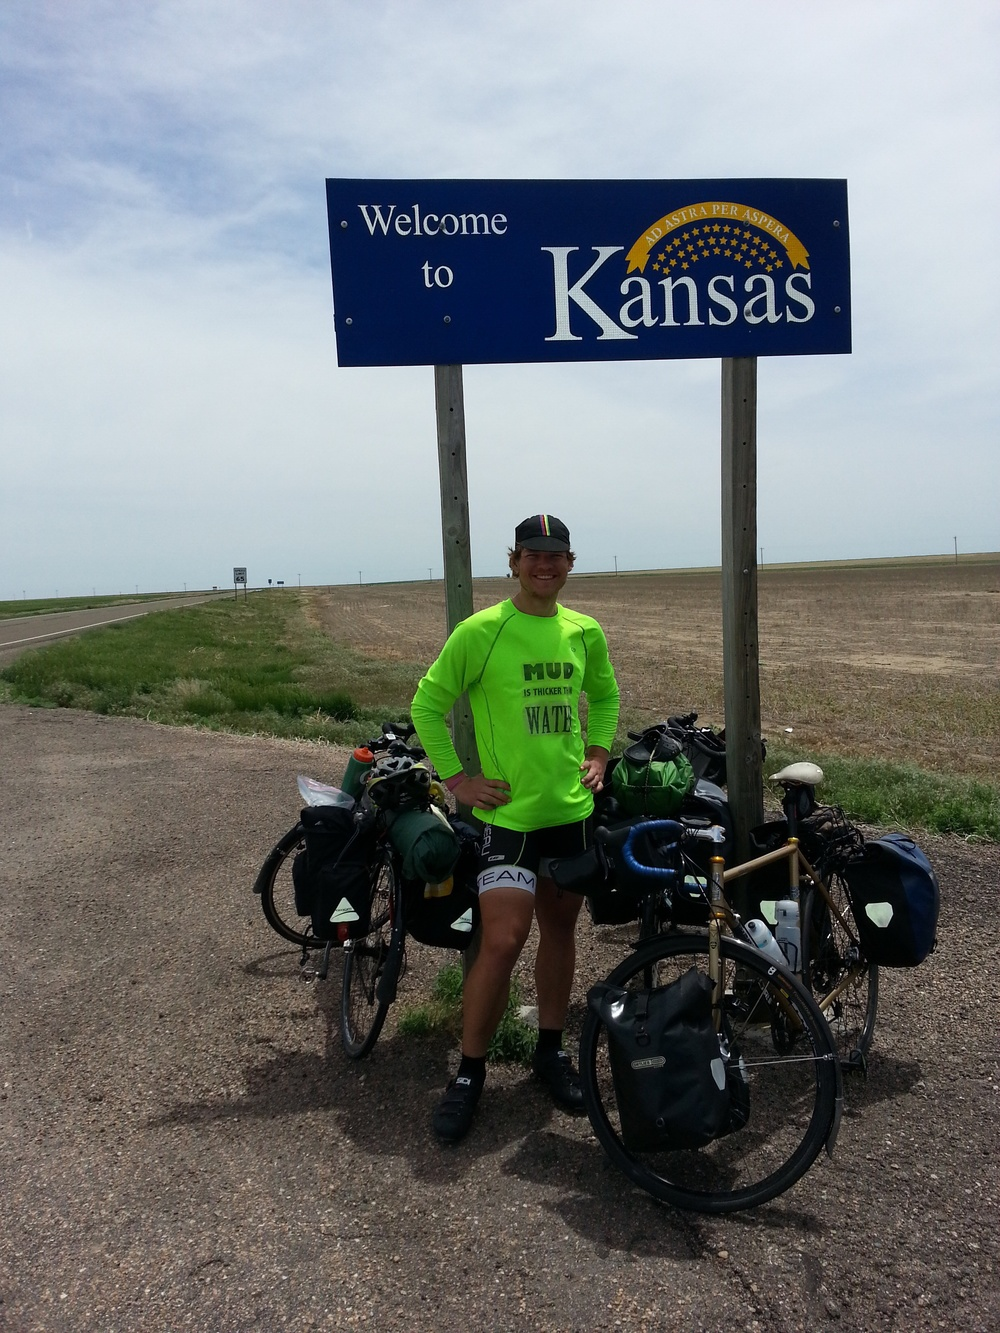 We eventually entered Kansas...who knows when.